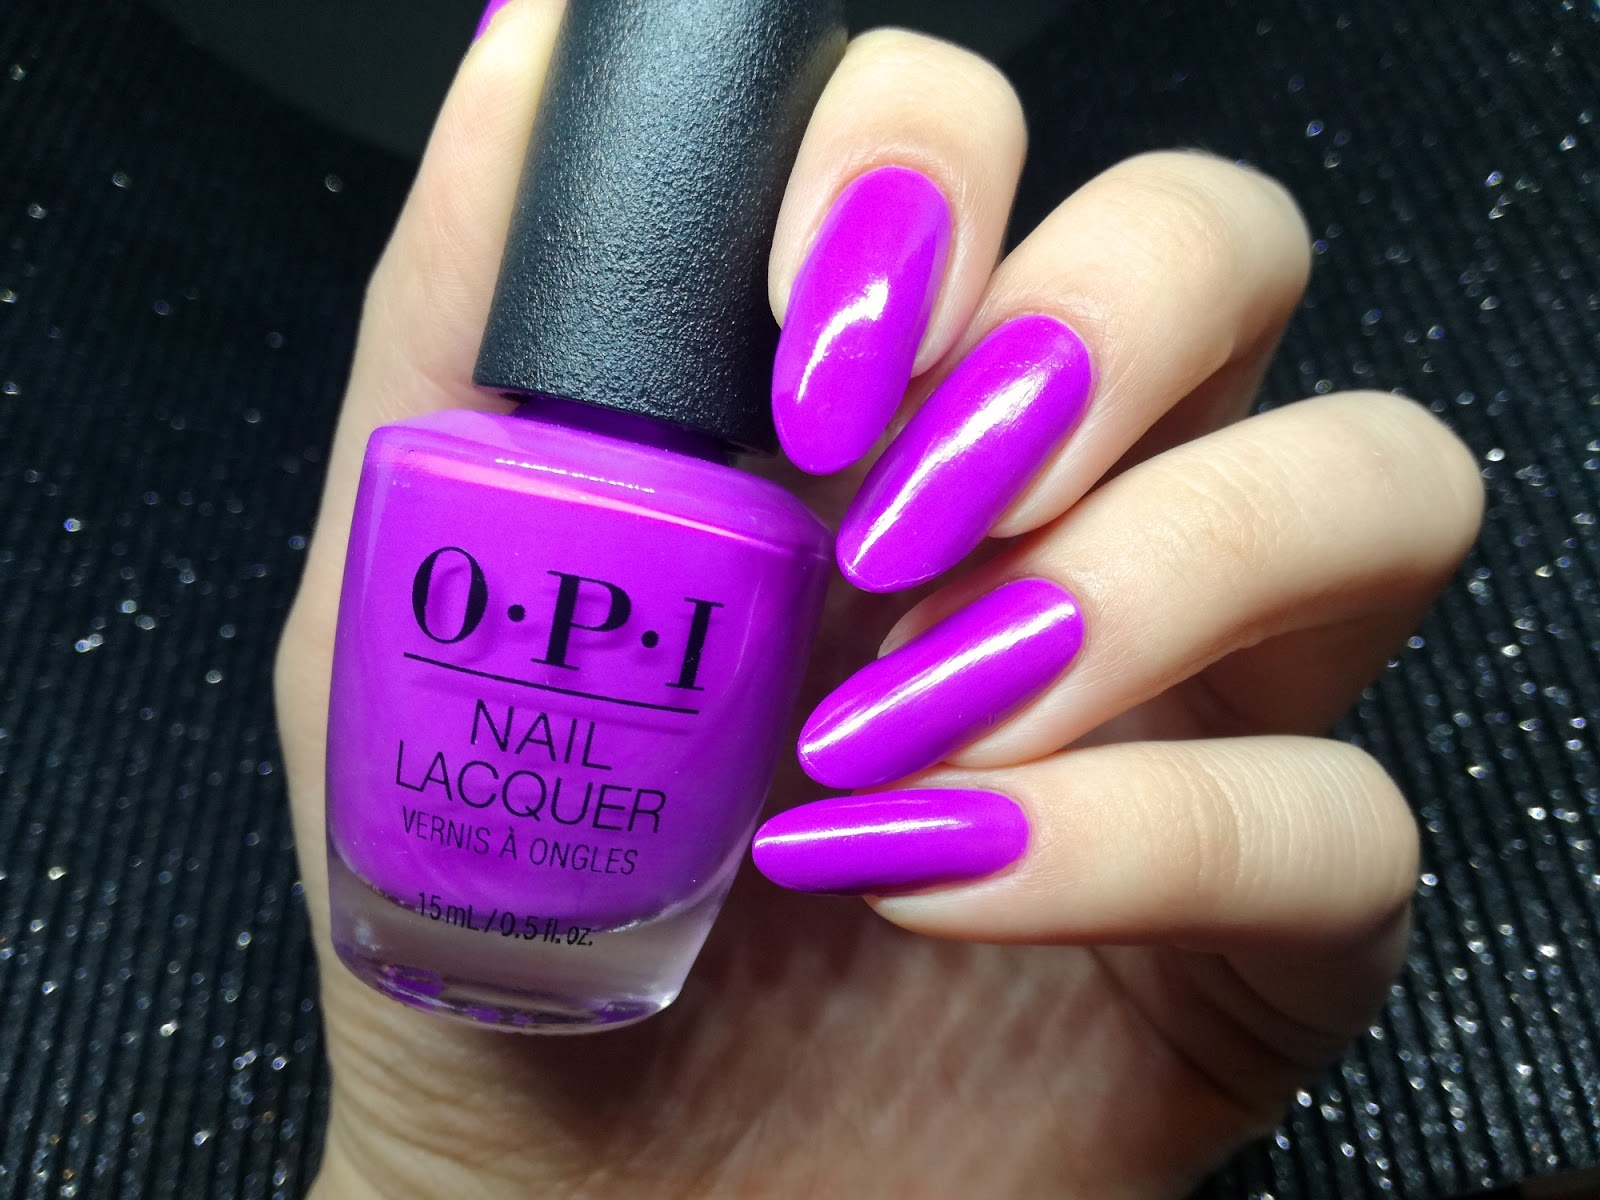 OPI Positive vibes only